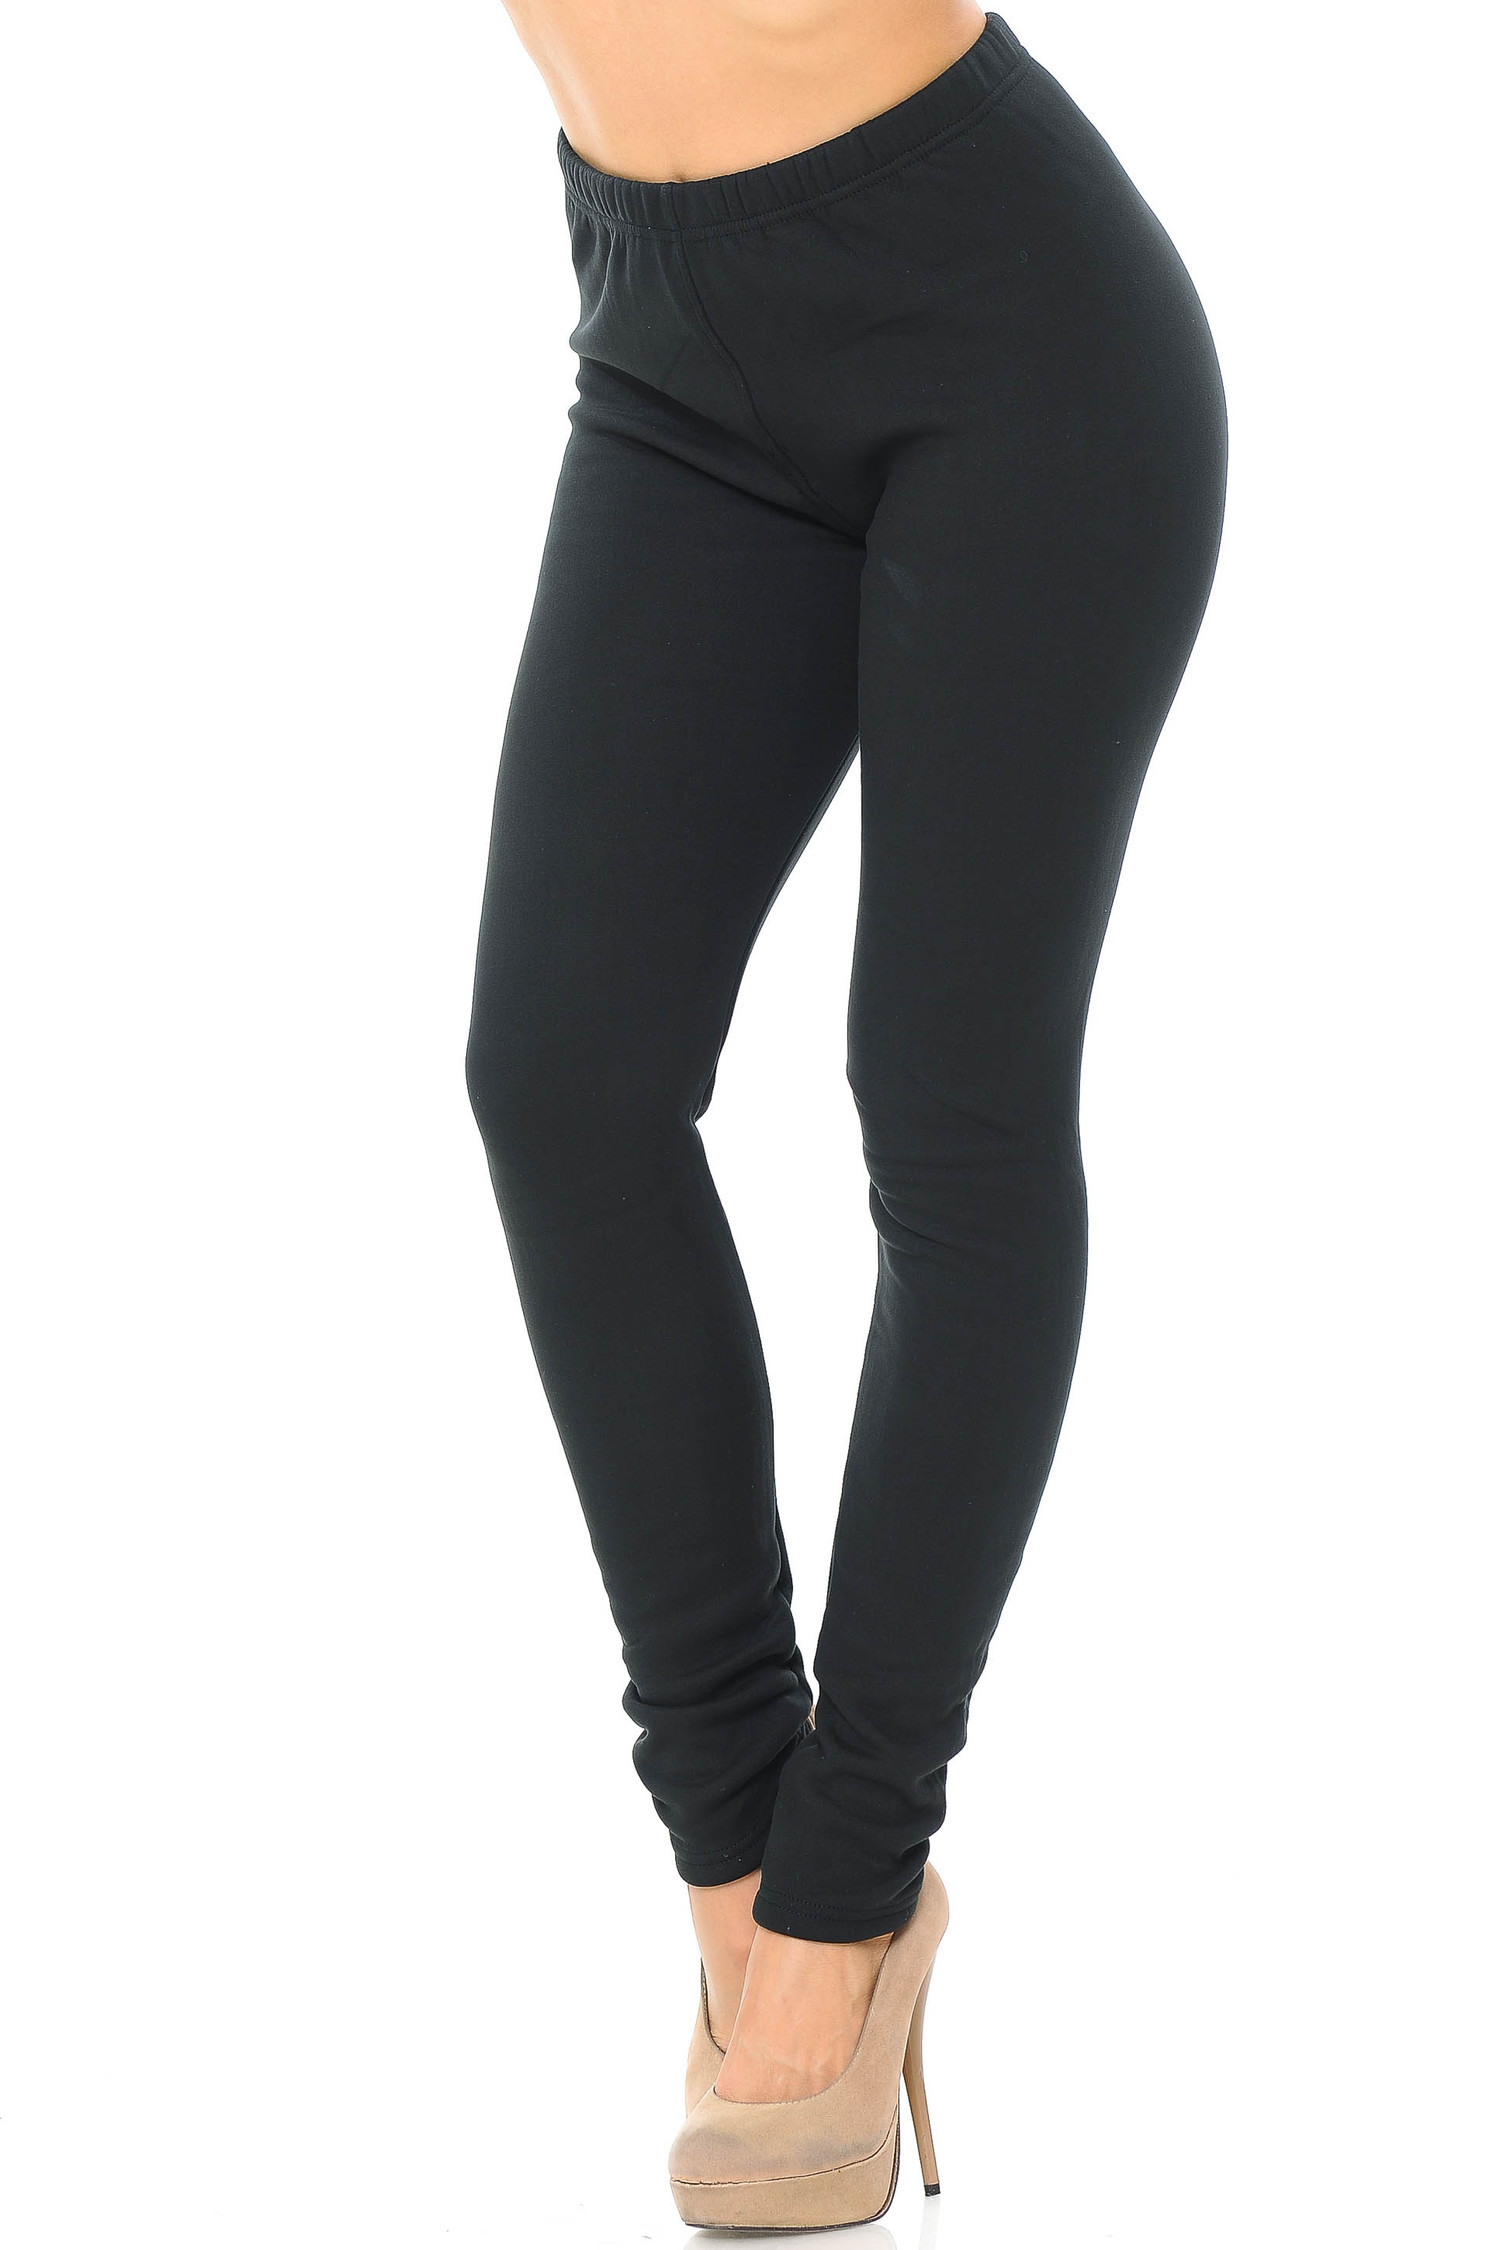 45 degree view of solid black Creamy Soft Fleece Lined Leggings - USA Fashion™